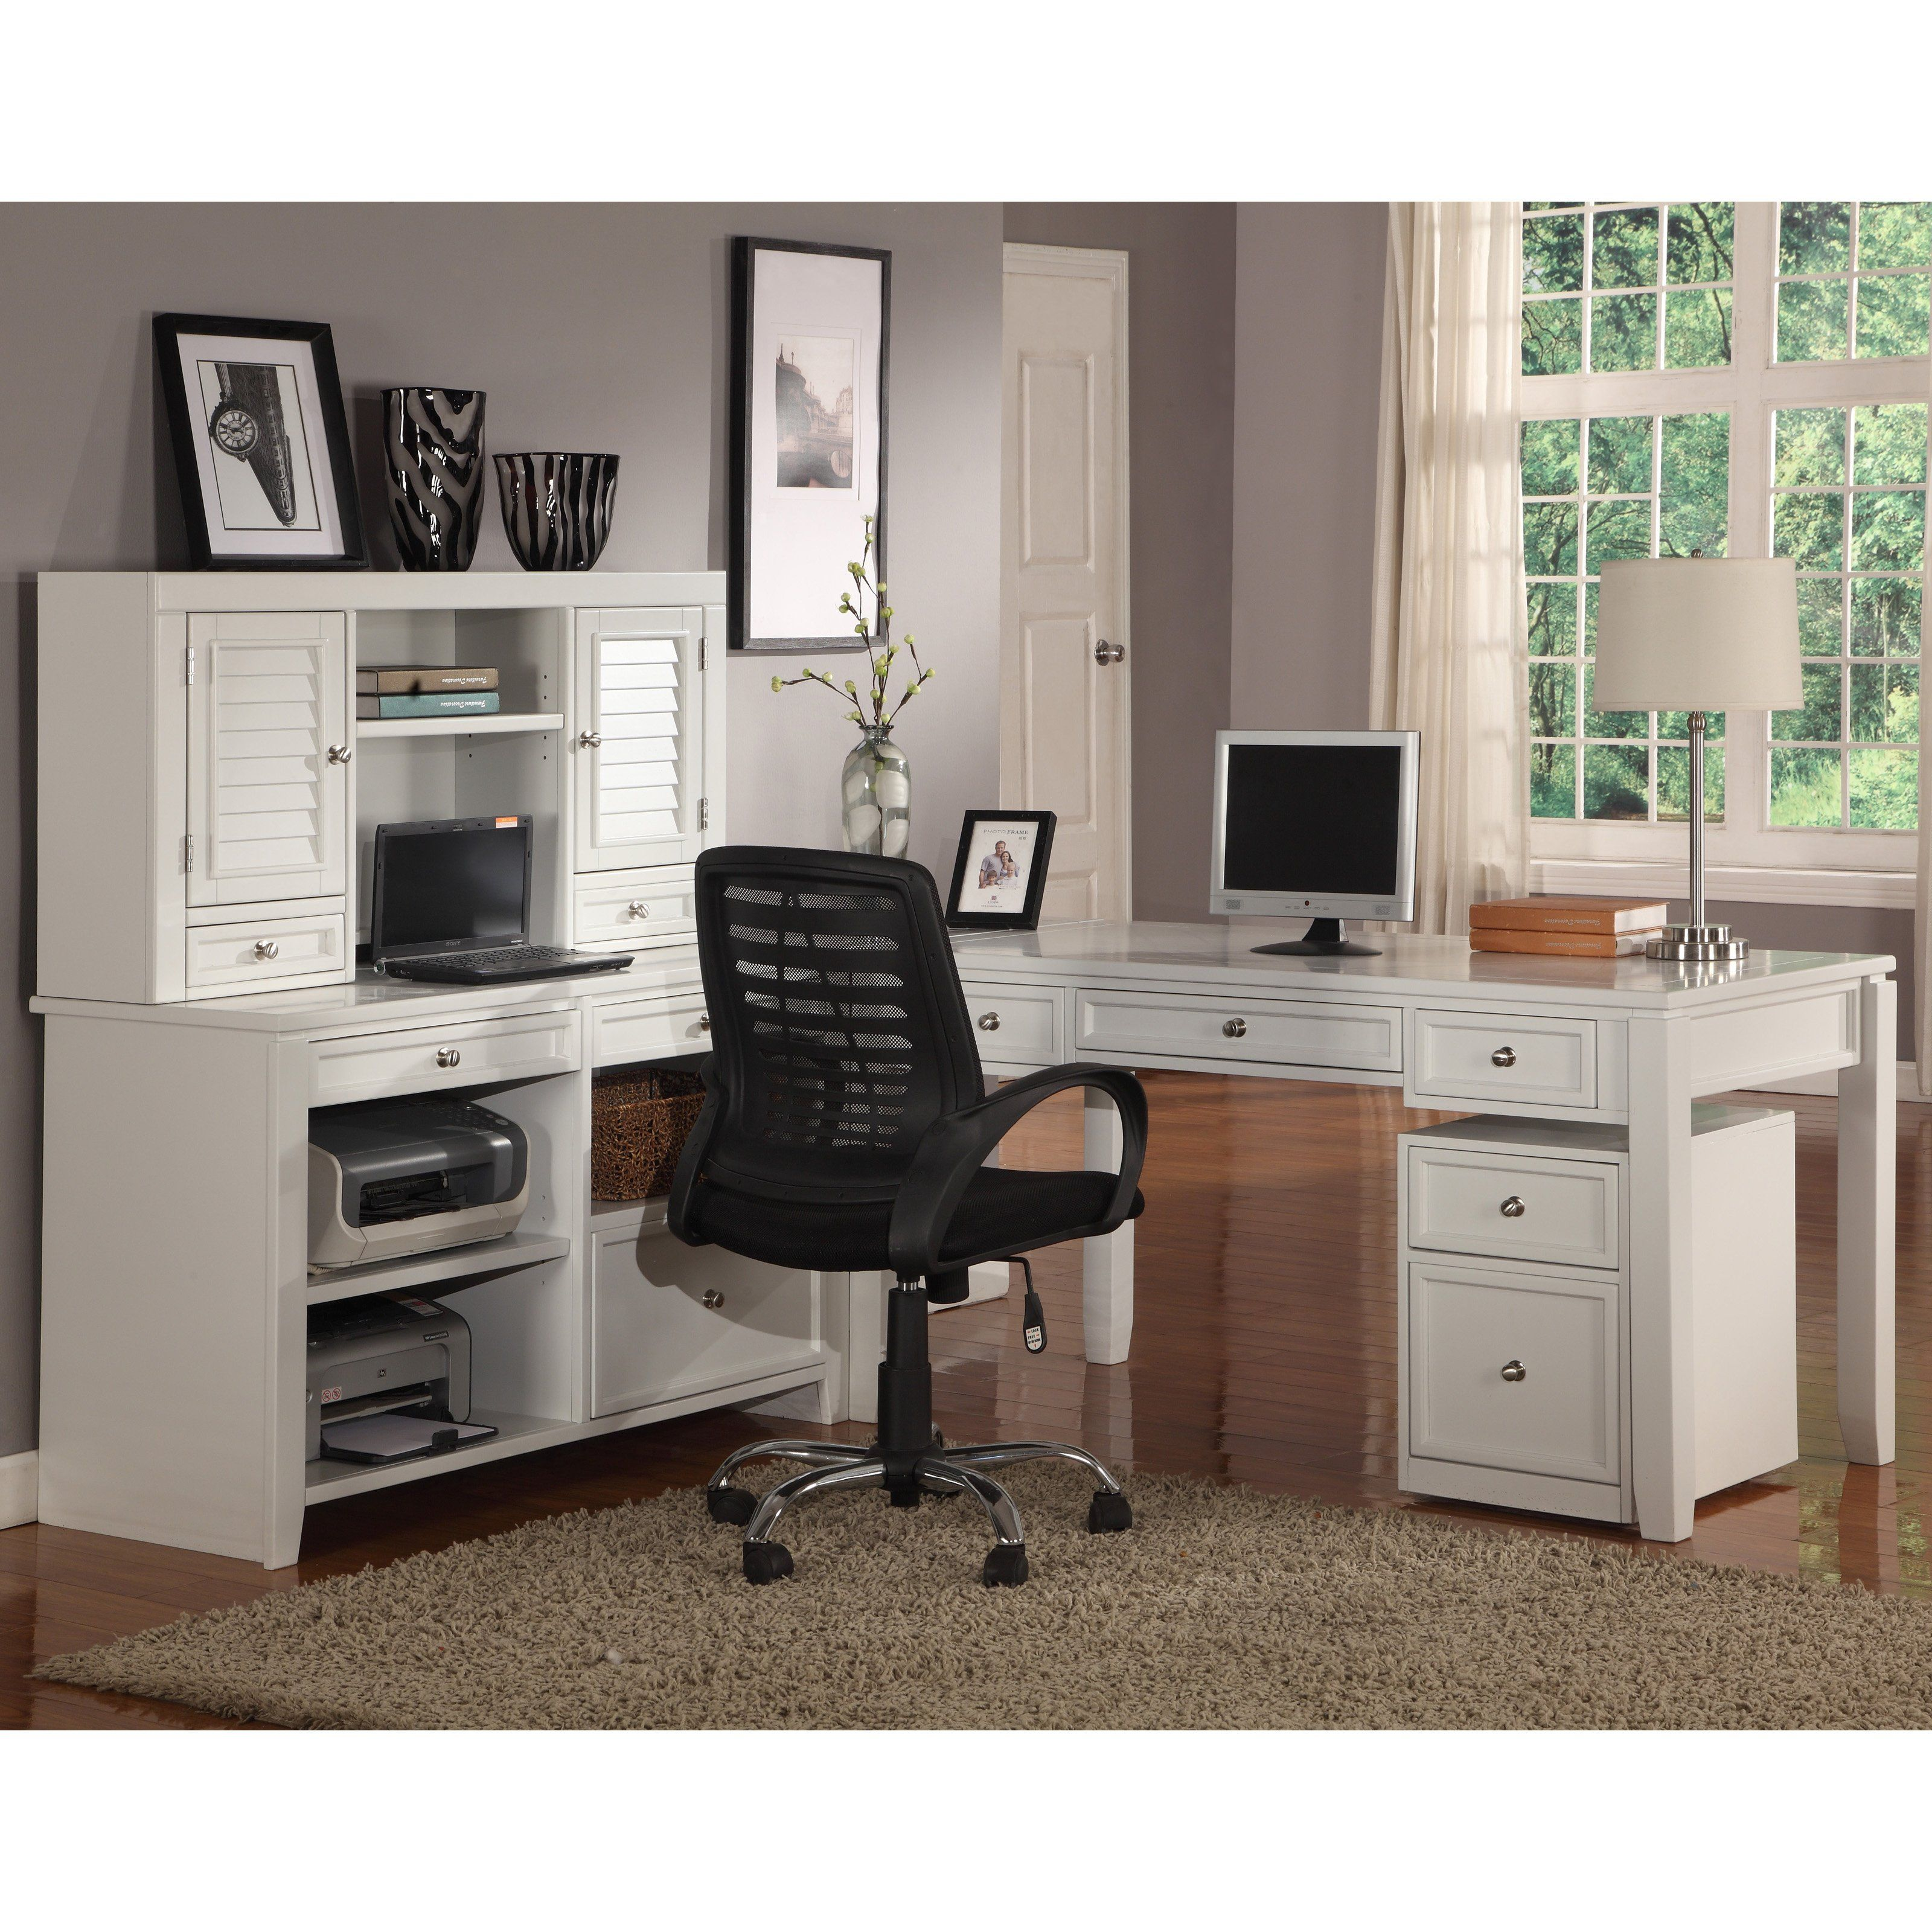 furniture desk grey shaped racks wooden black the top alluring l study idea as complete magnetizing room main of white with